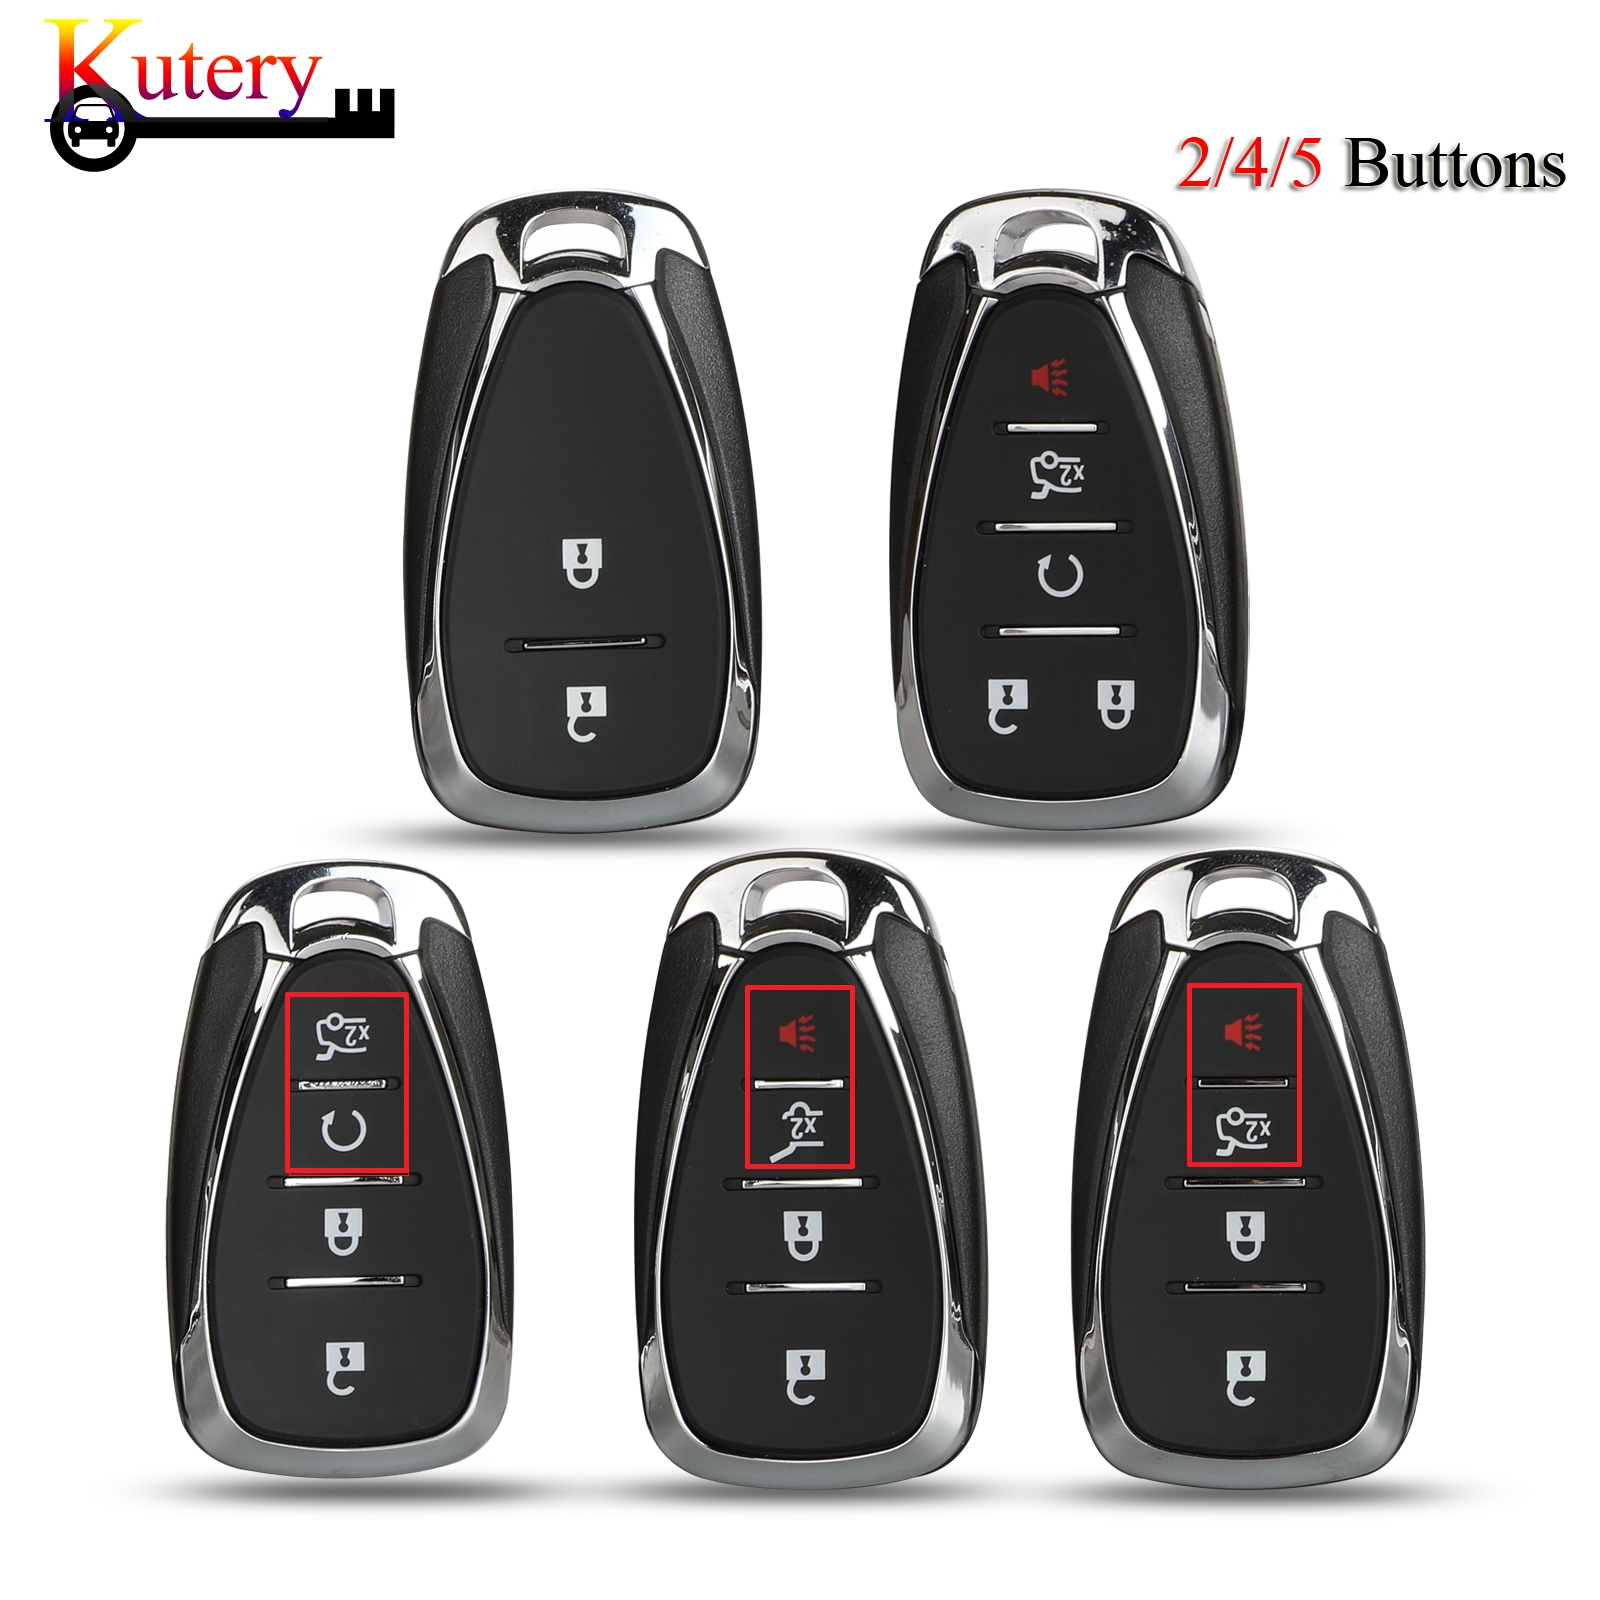 Kutery Remote Smart Key Shell For <font><b>Chevrolet</b></font> Cruze Malibu Camaro <font><b>Spark</b></font> 2016 <font><b>2017</b></font> 2018 Emergency Blade 2/4/5 Buttons image